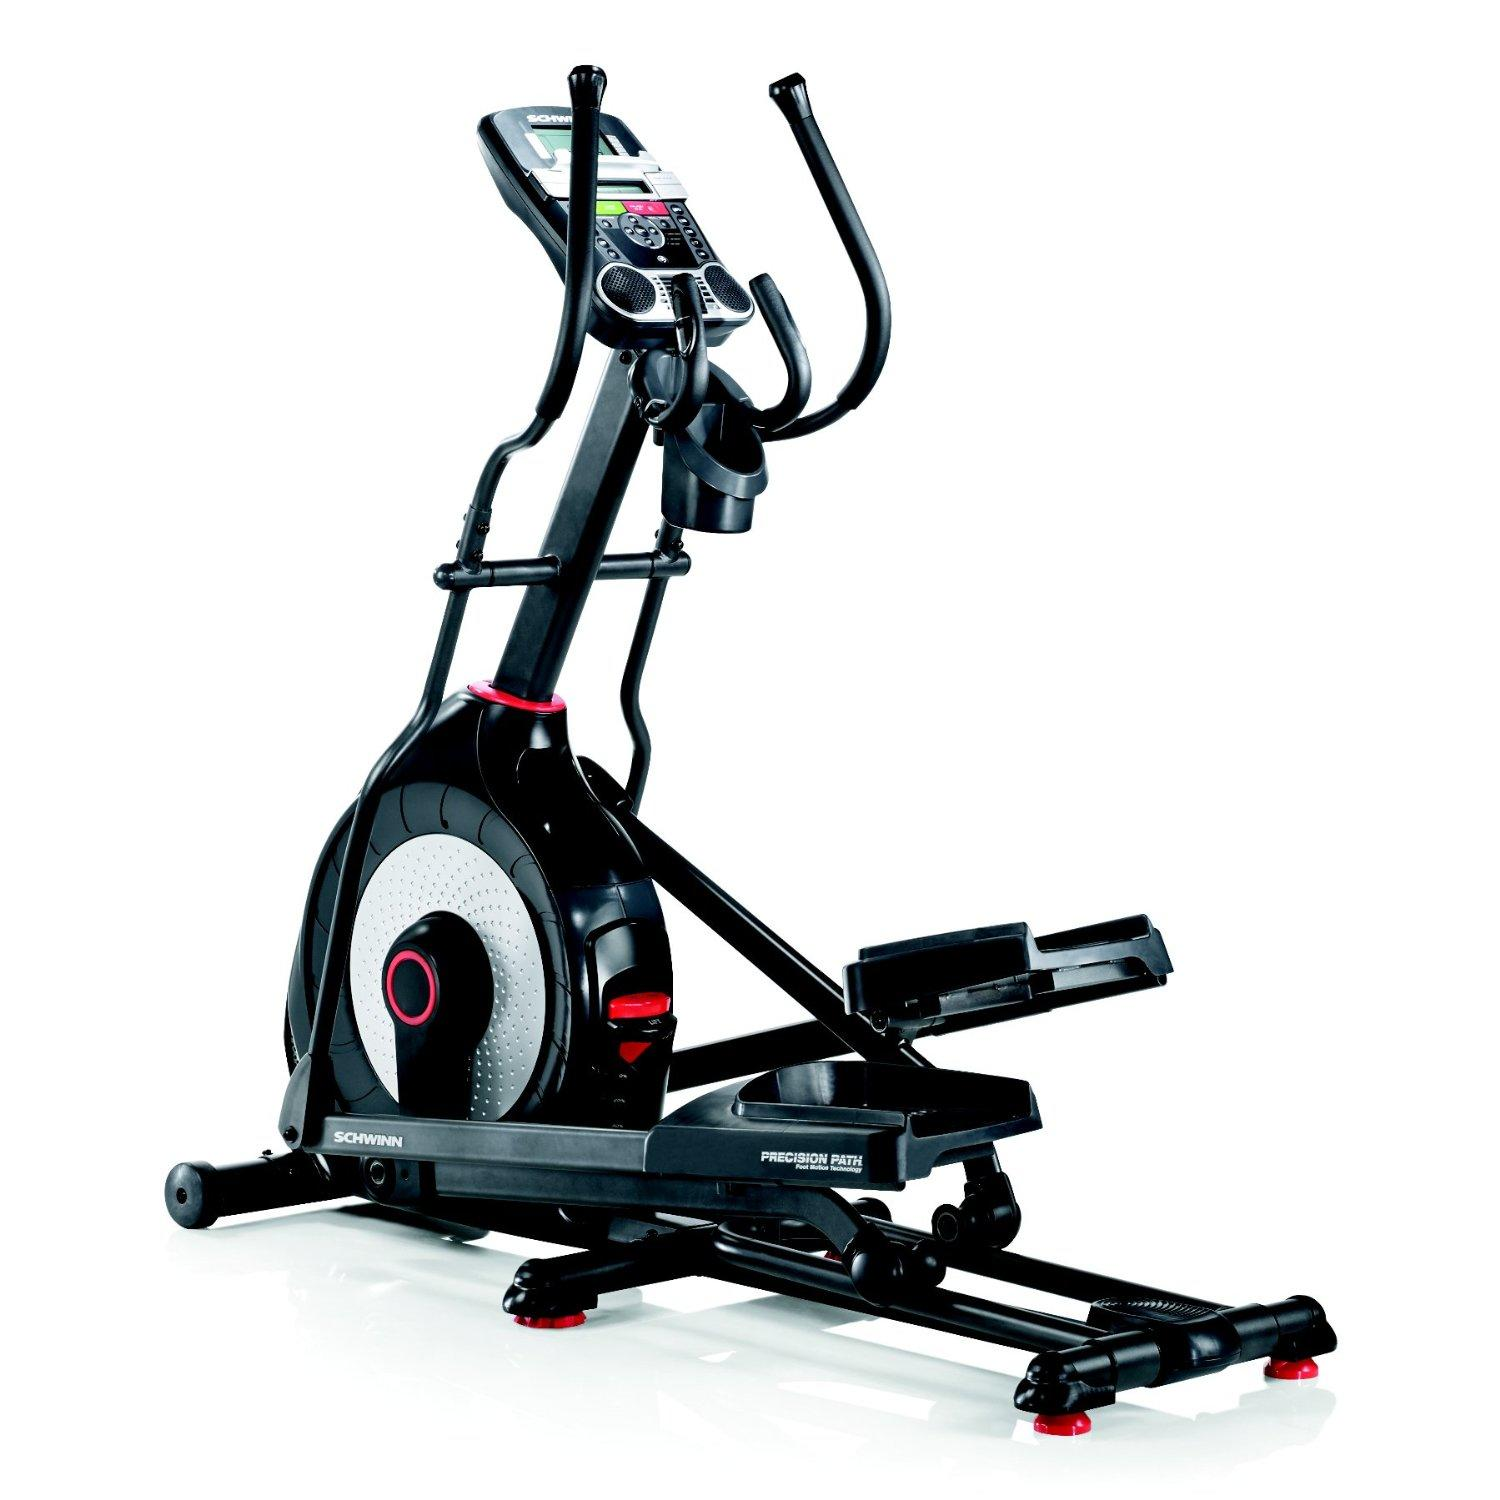 Schwinn 430 Elliptical look awesome in full black body frame